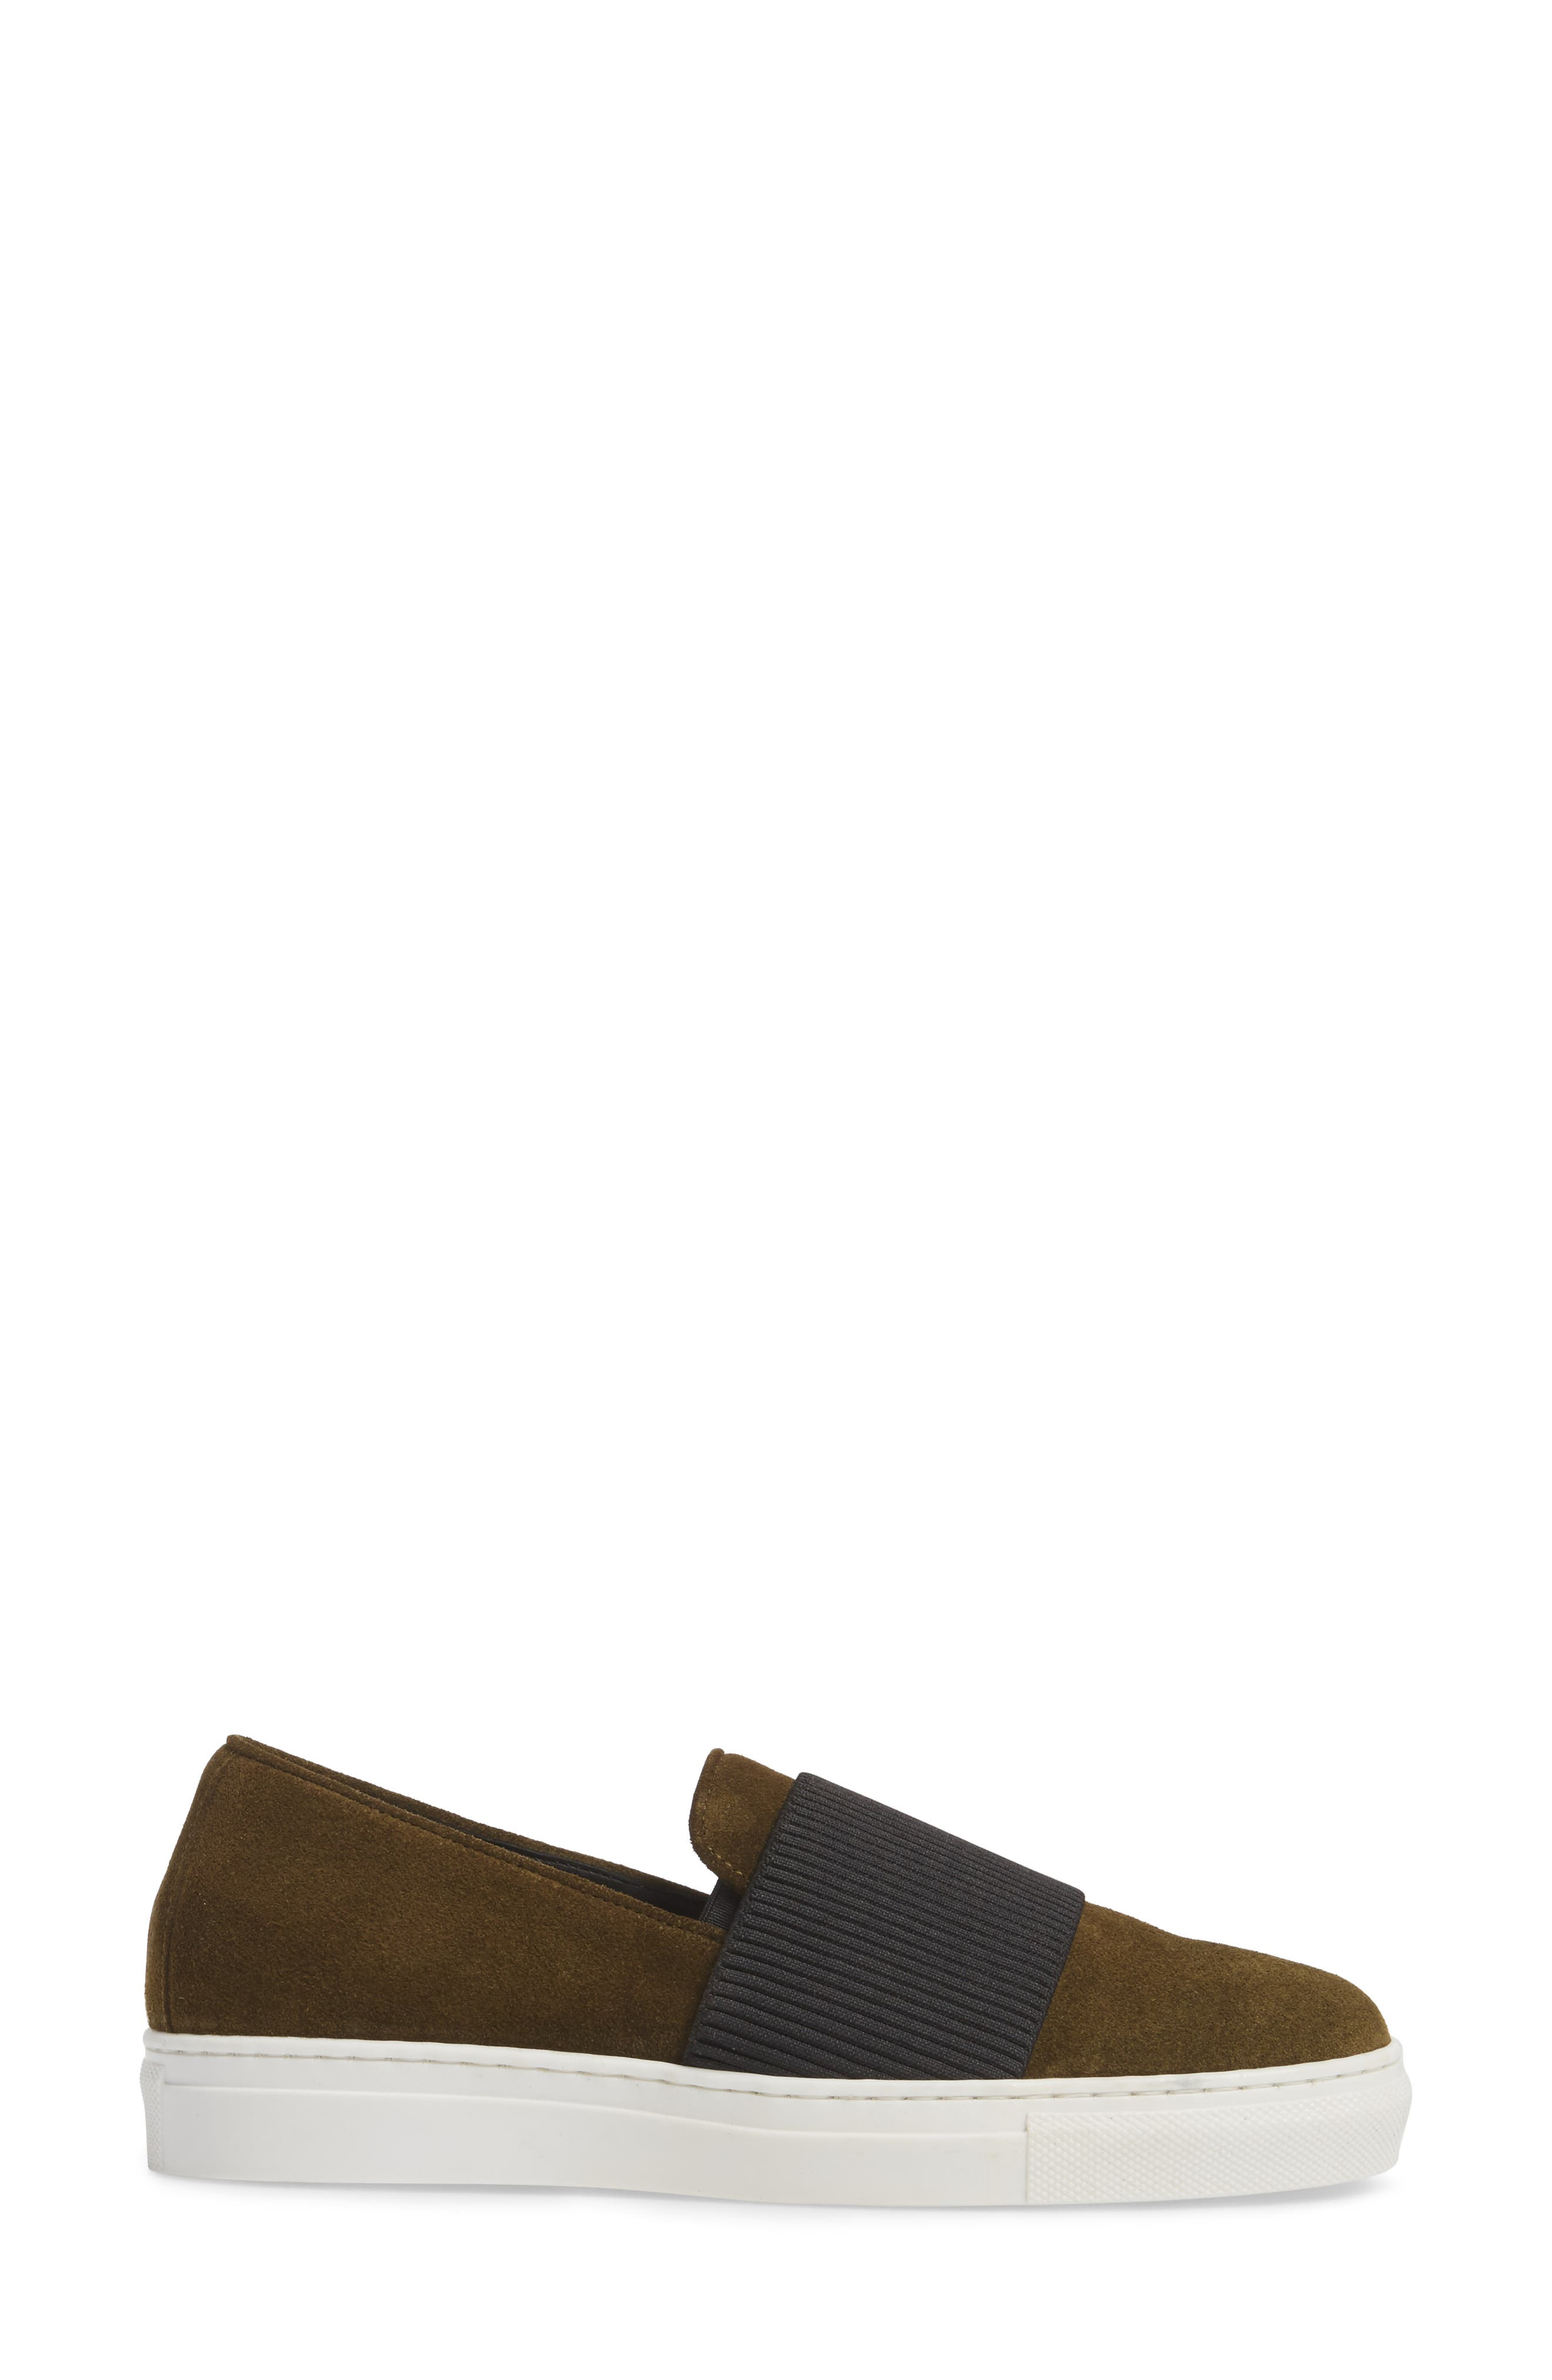 Otto Slip-On Sneaker,                             Alternate thumbnail 3, color,                             MILITARY PRINT SUEDE